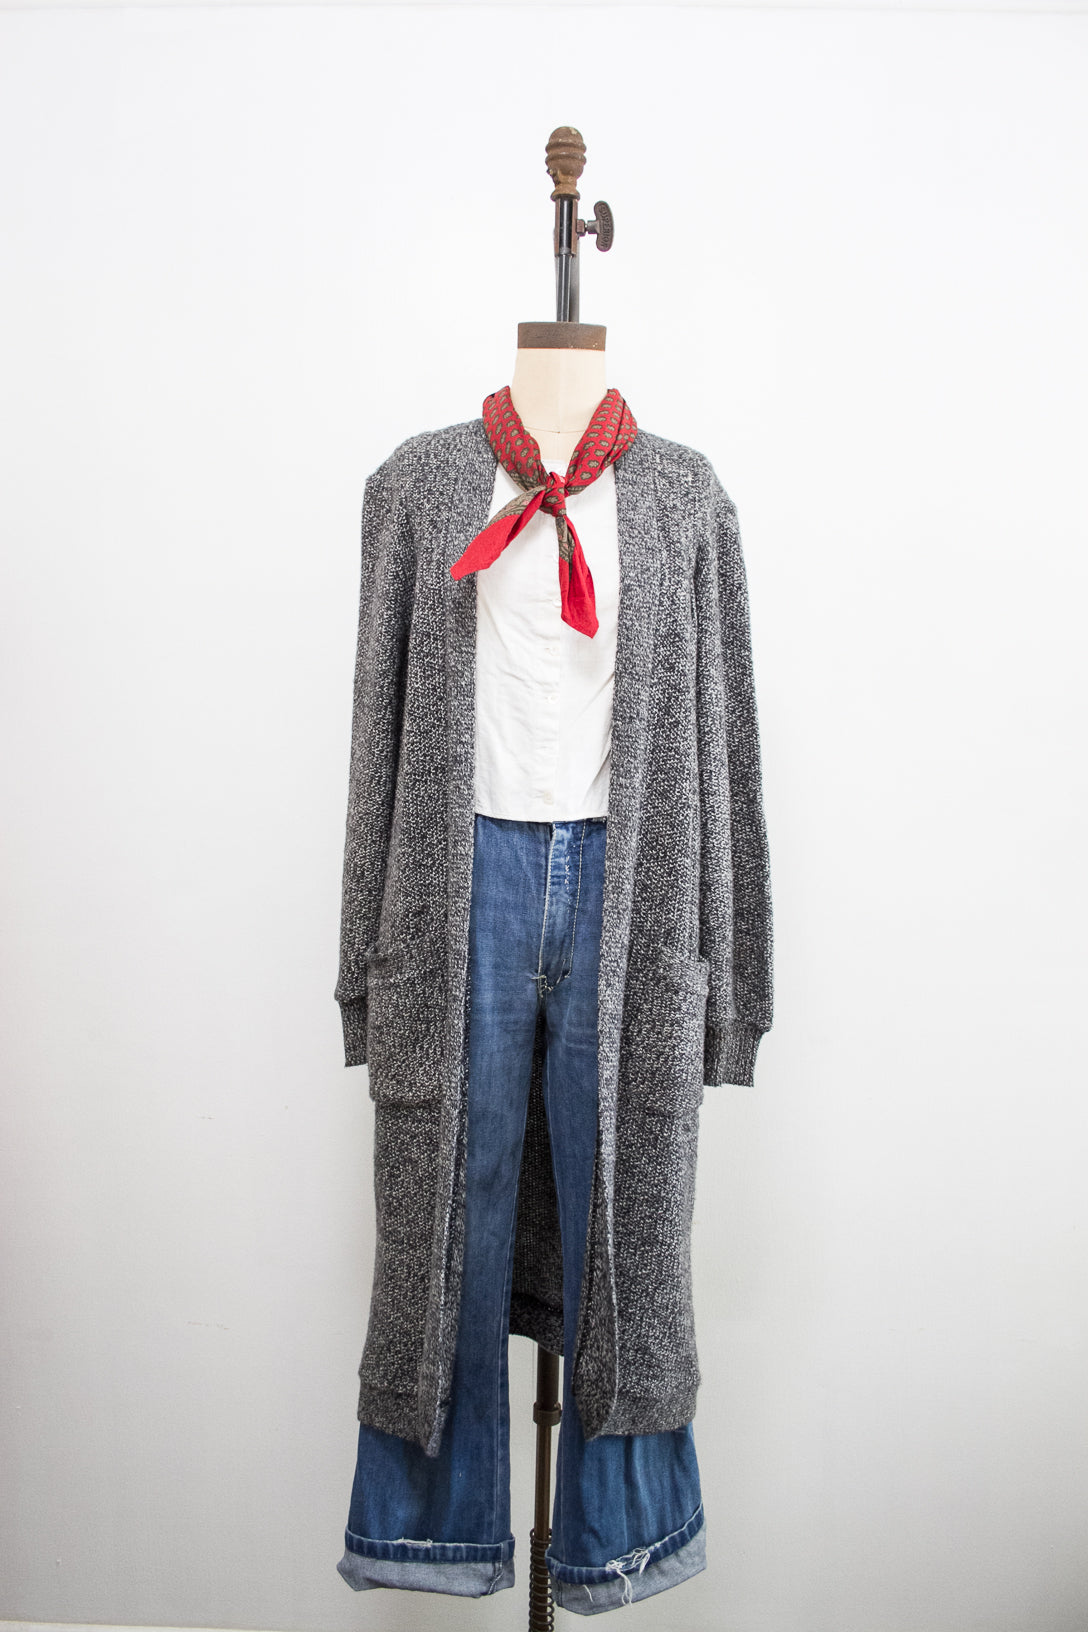 1980s Bullocks Wilshire Soft Grey Long Cardigan